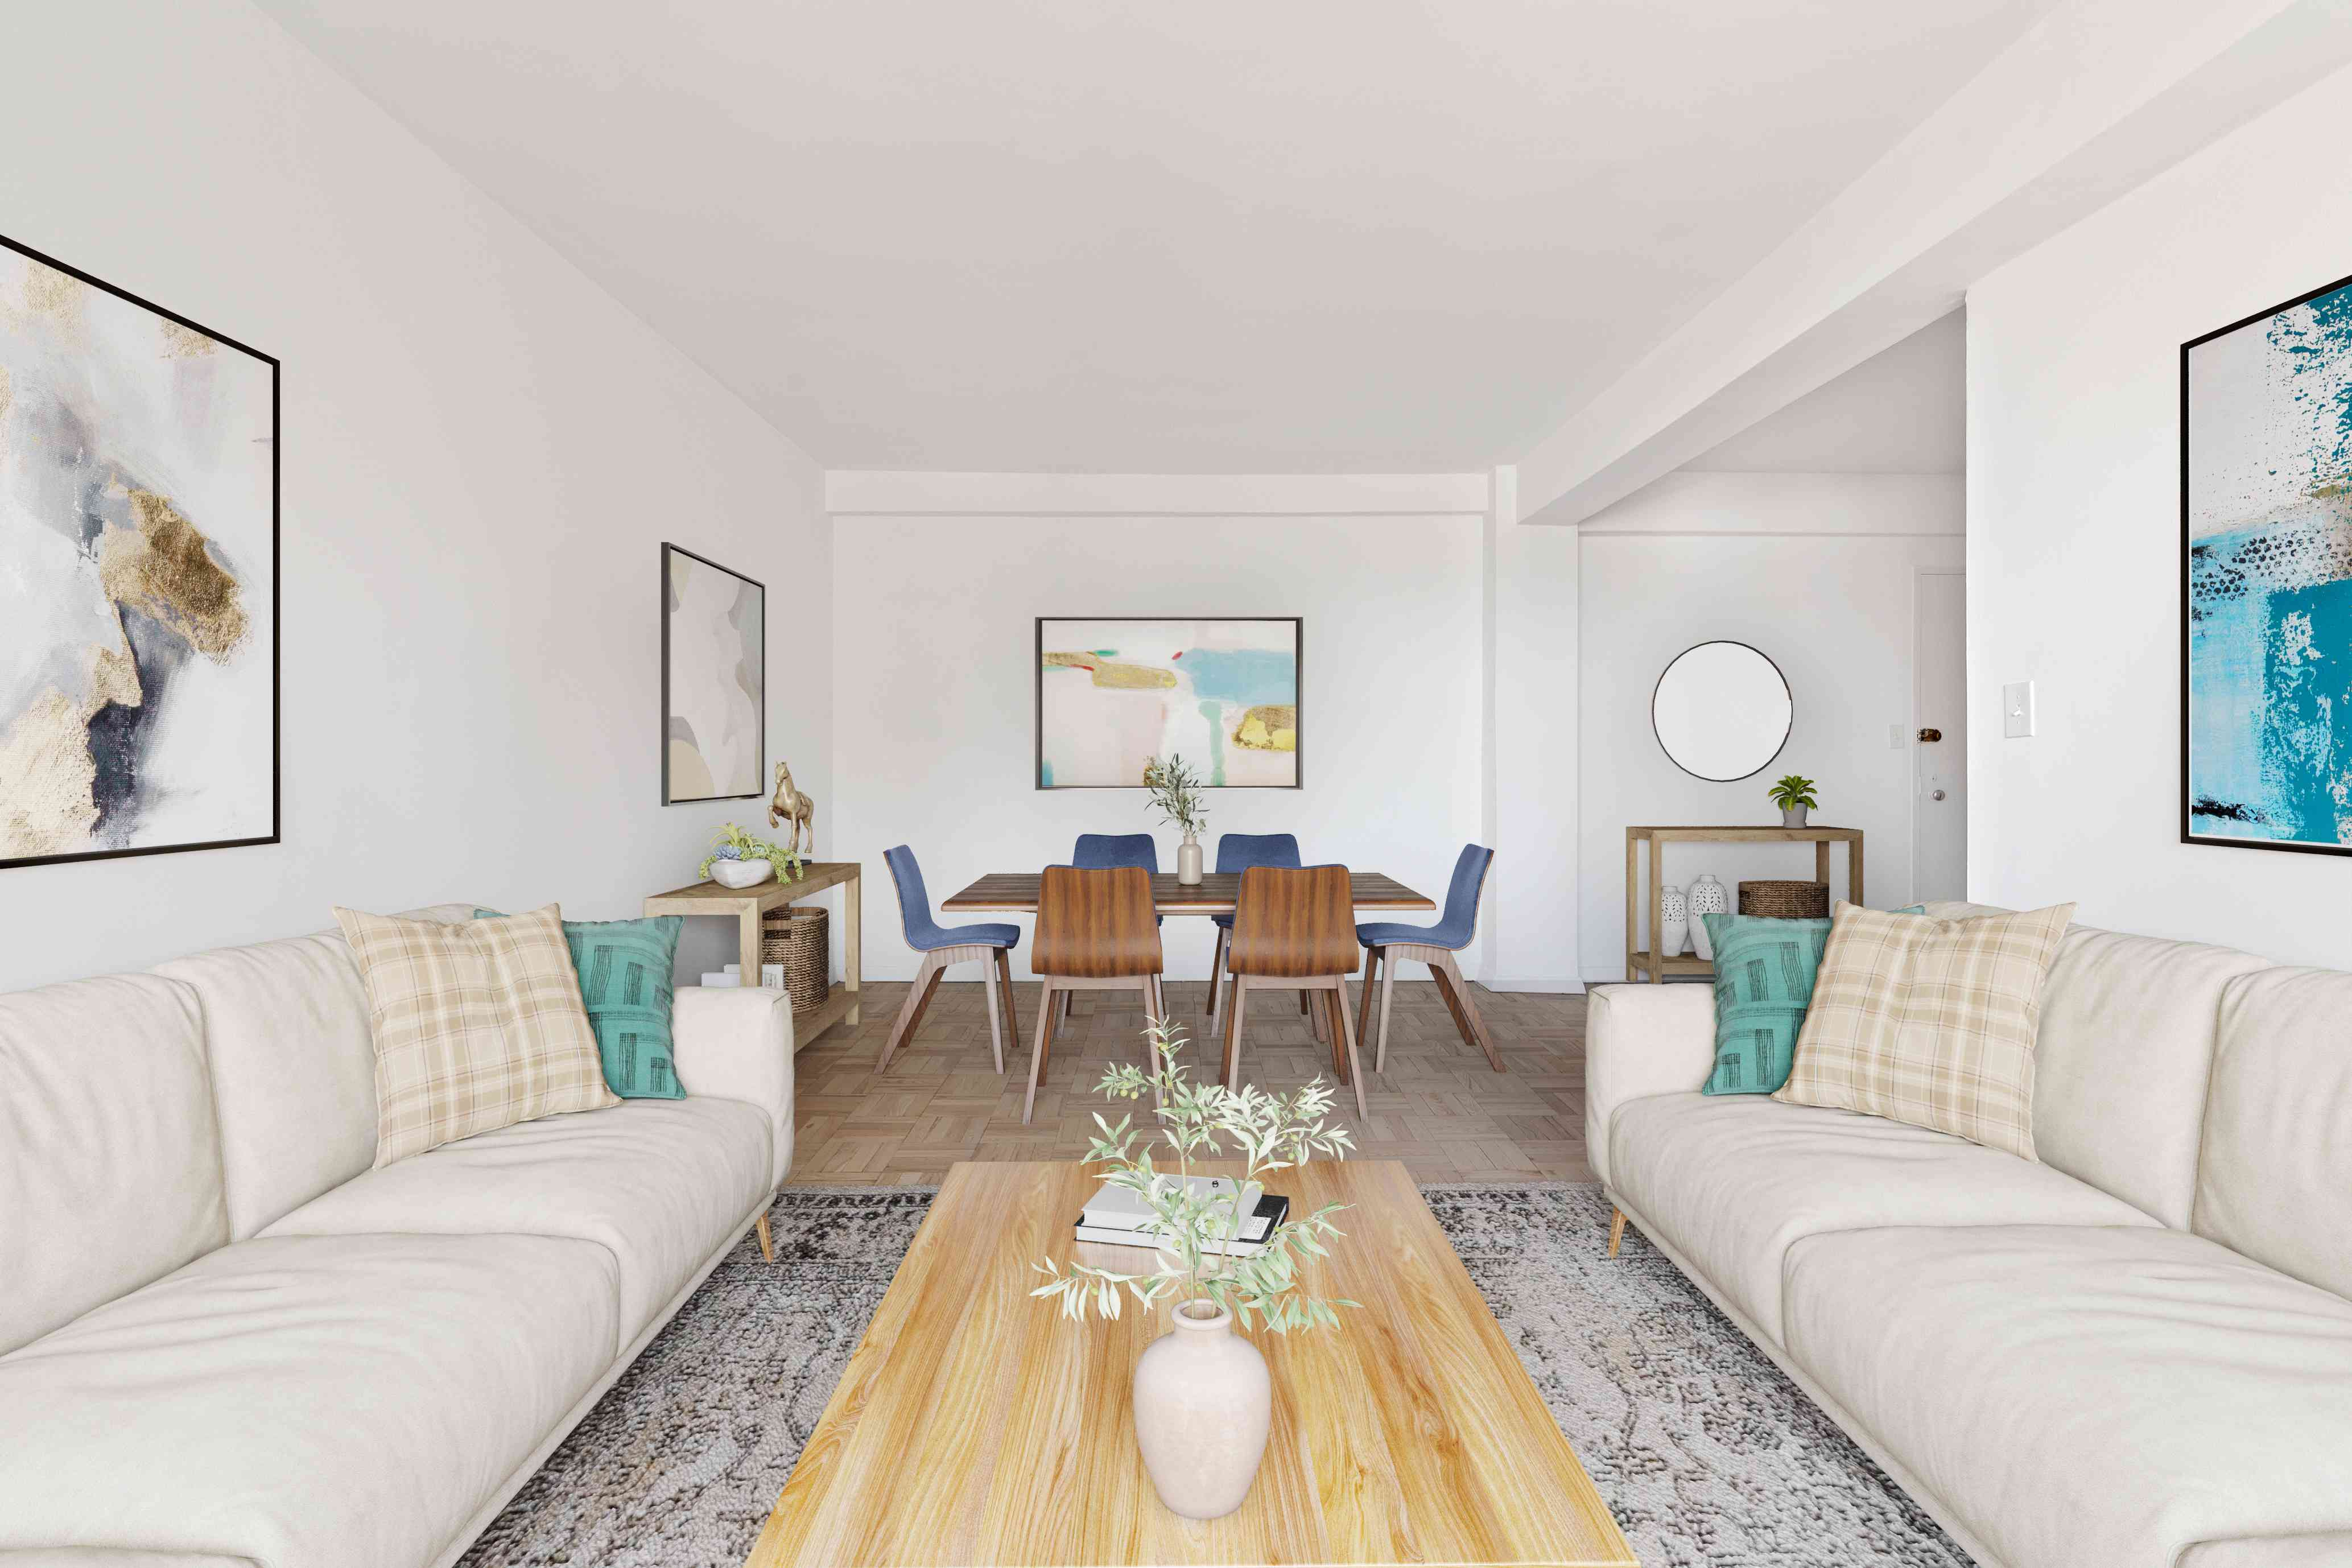 Living and dining areas with a single floor type throughout